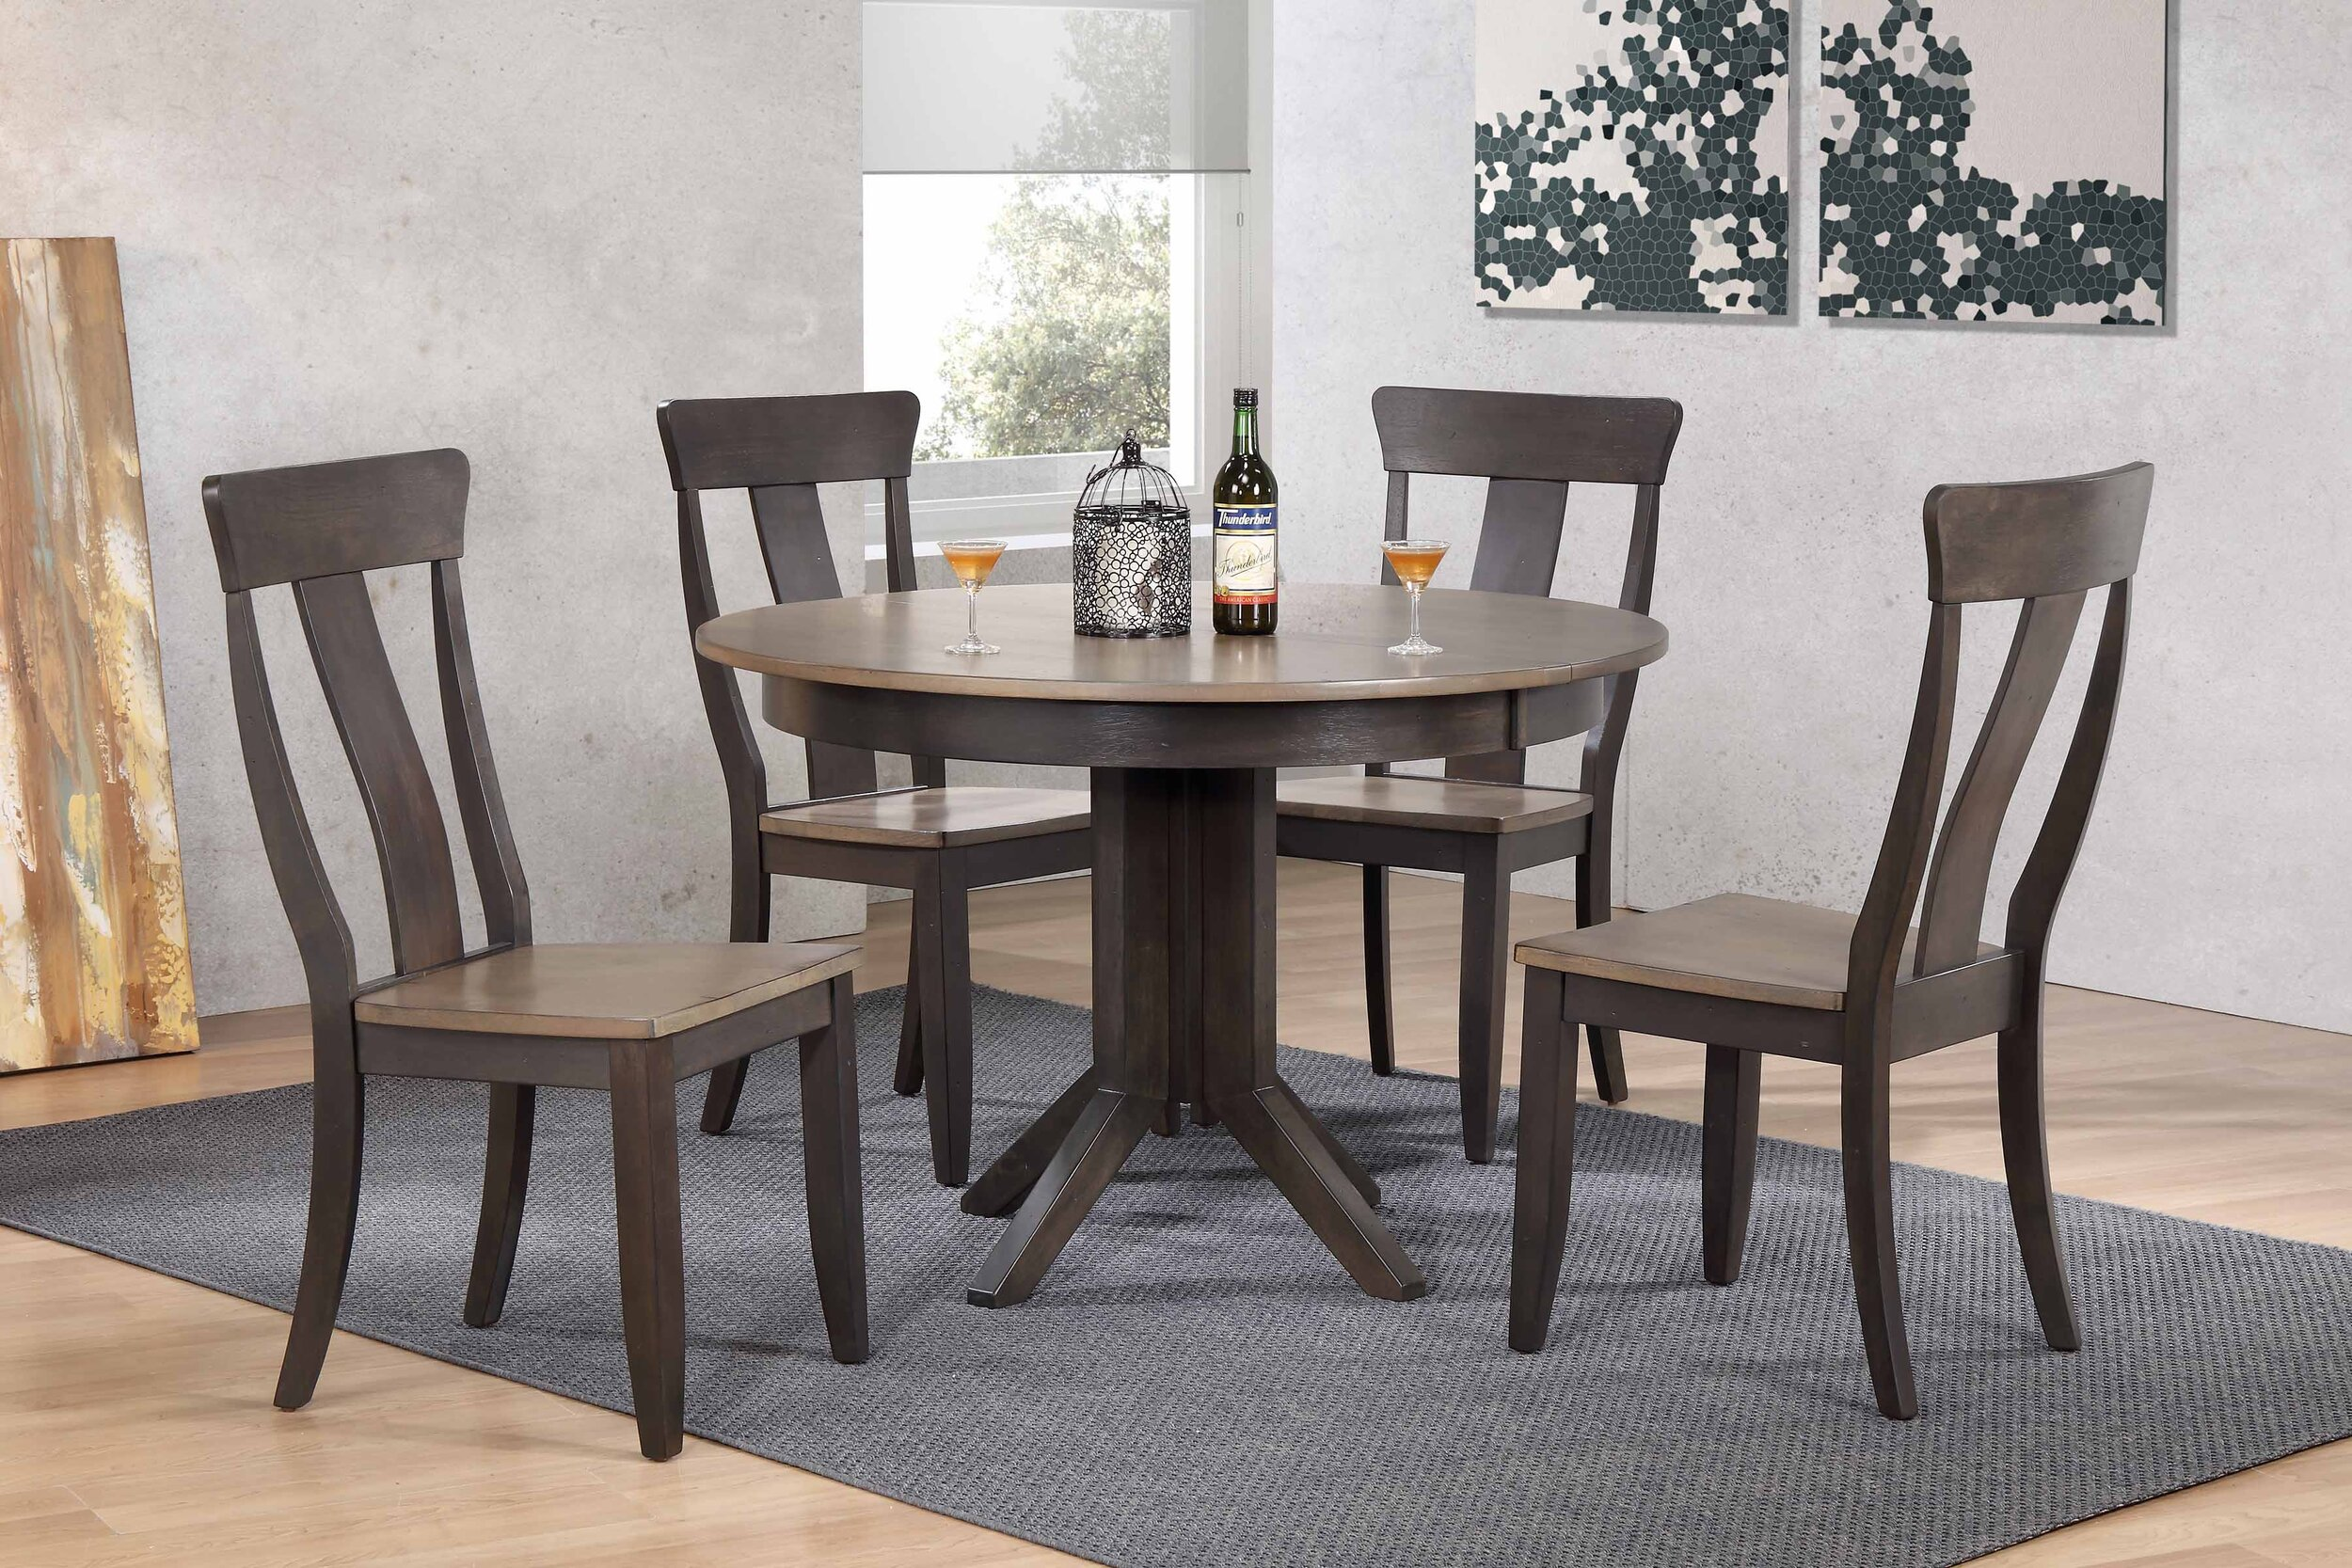 "45""x45""x63"" Contemporary Antiqued Grey Stone Black Stone Panel Back (5-Piece Dining Set)"